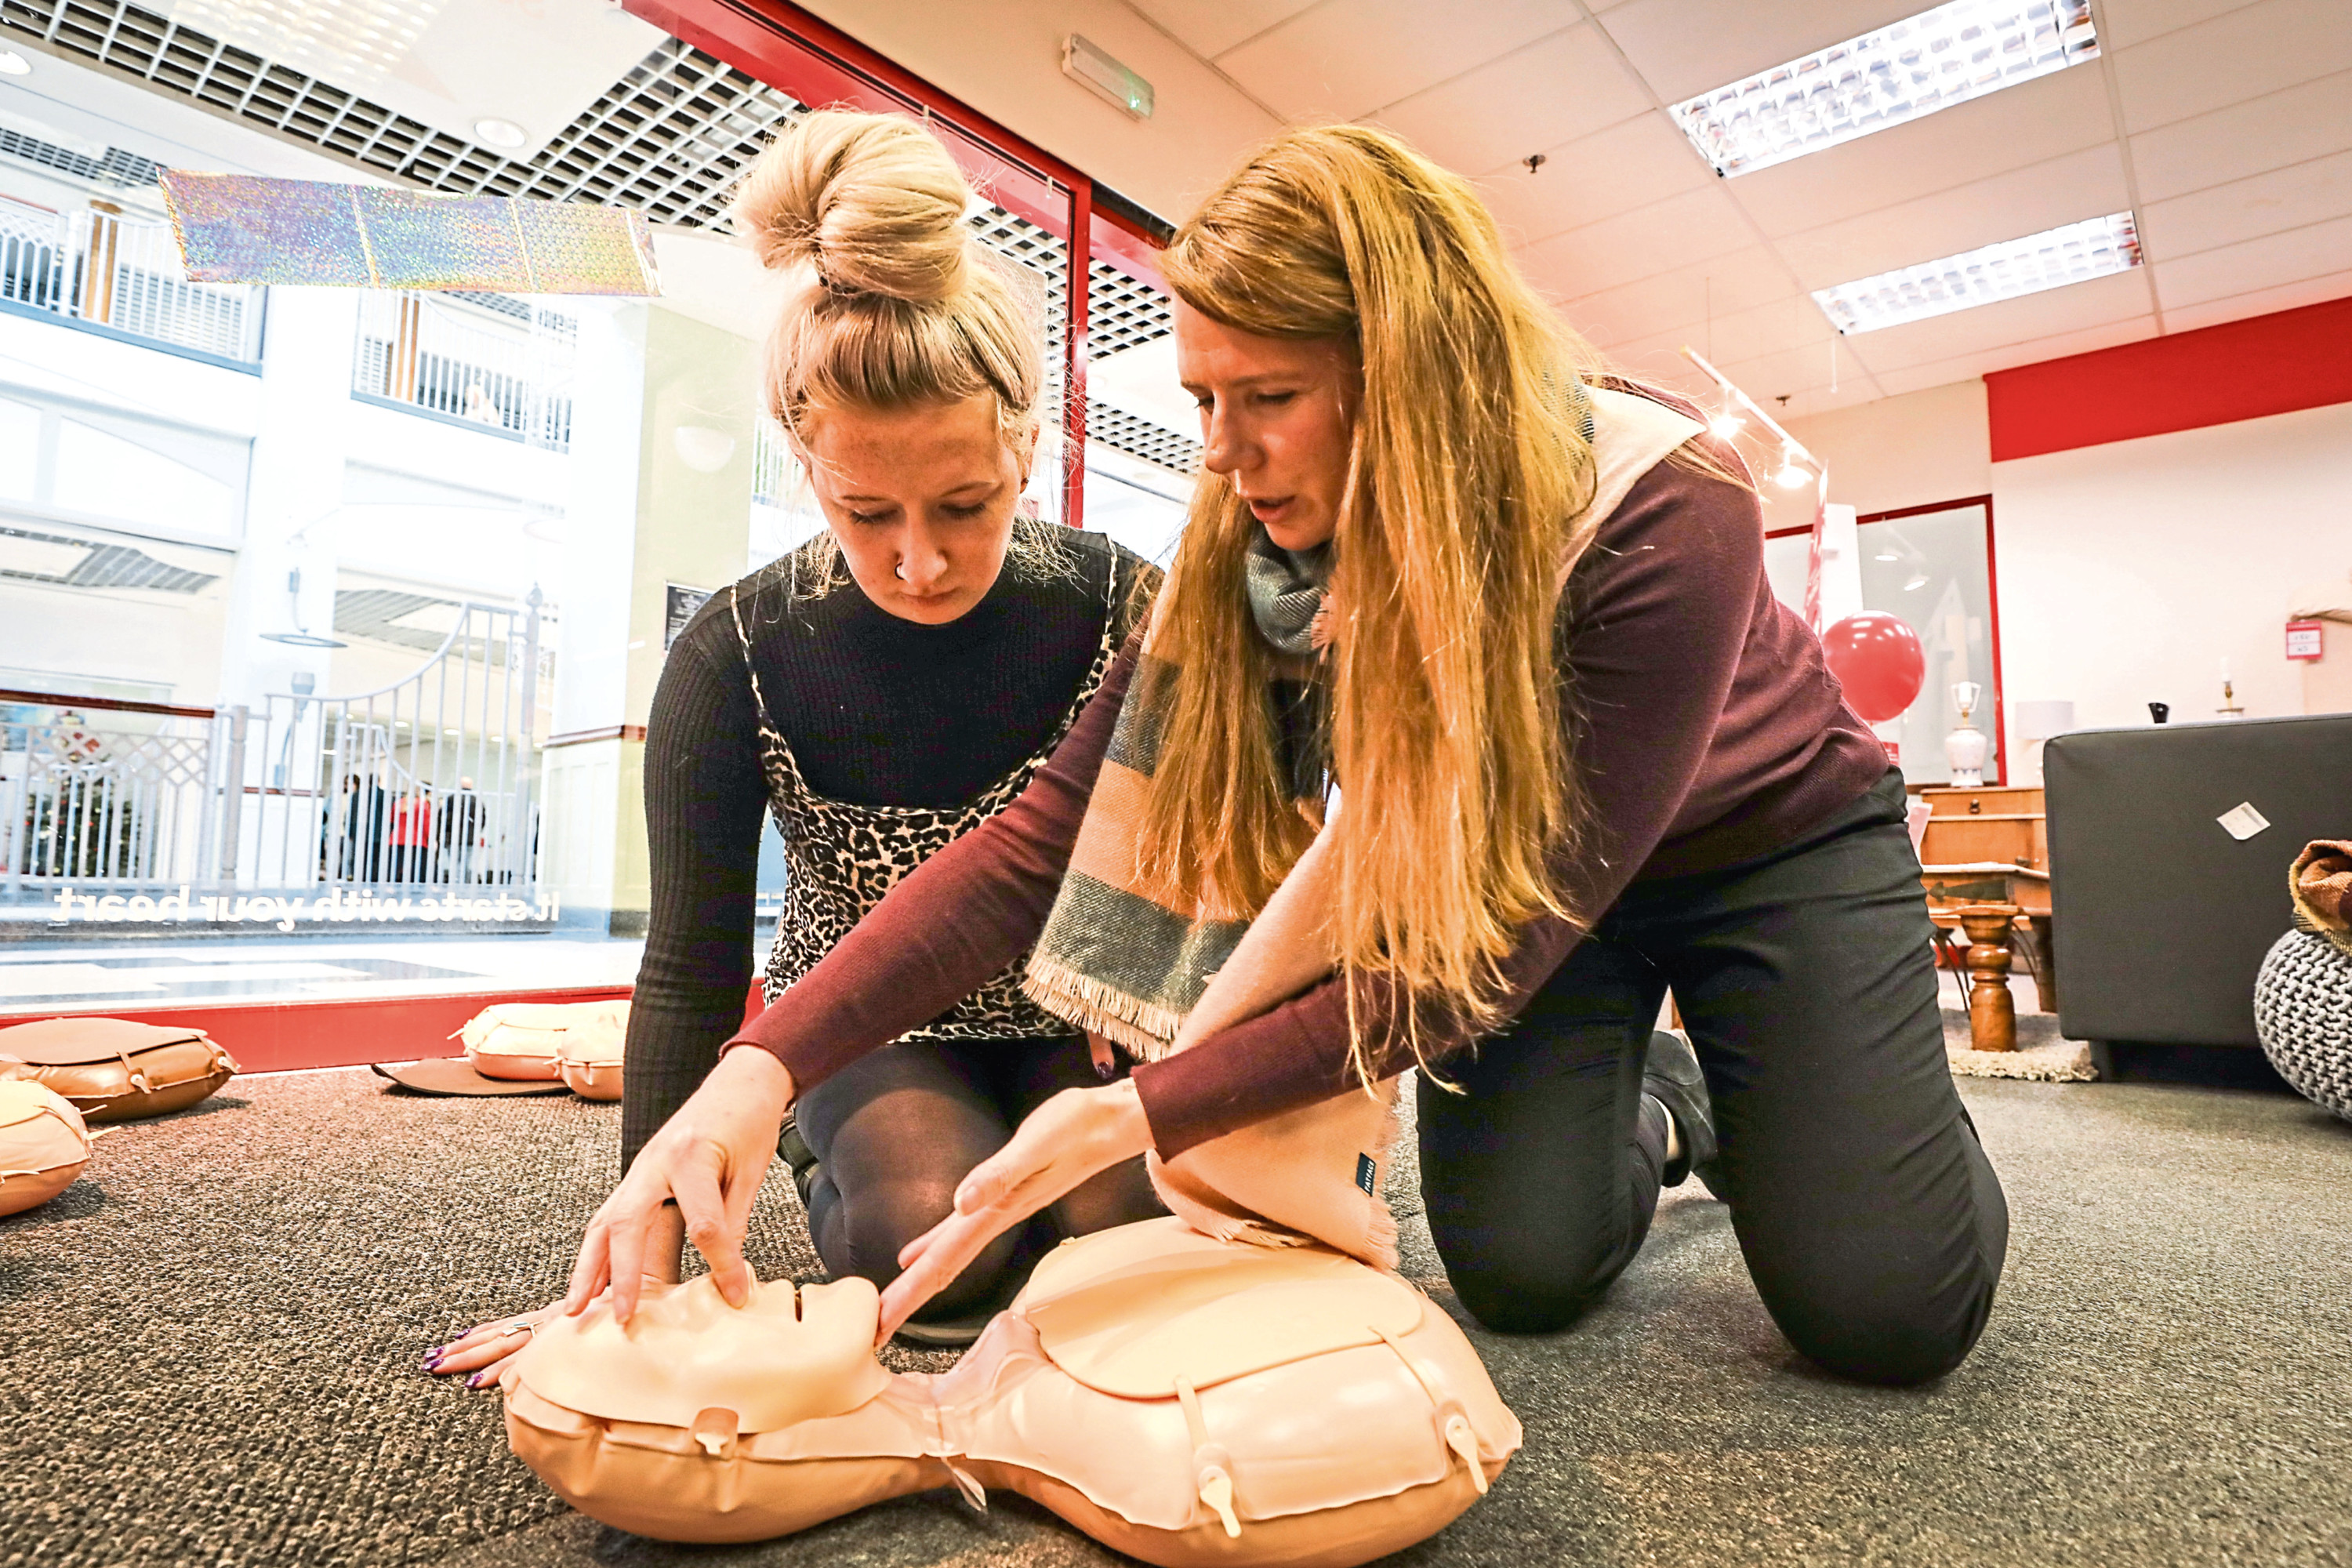 Tele writer Amy getting a demo in how to perform CPR in the British Heart Foundation shop.